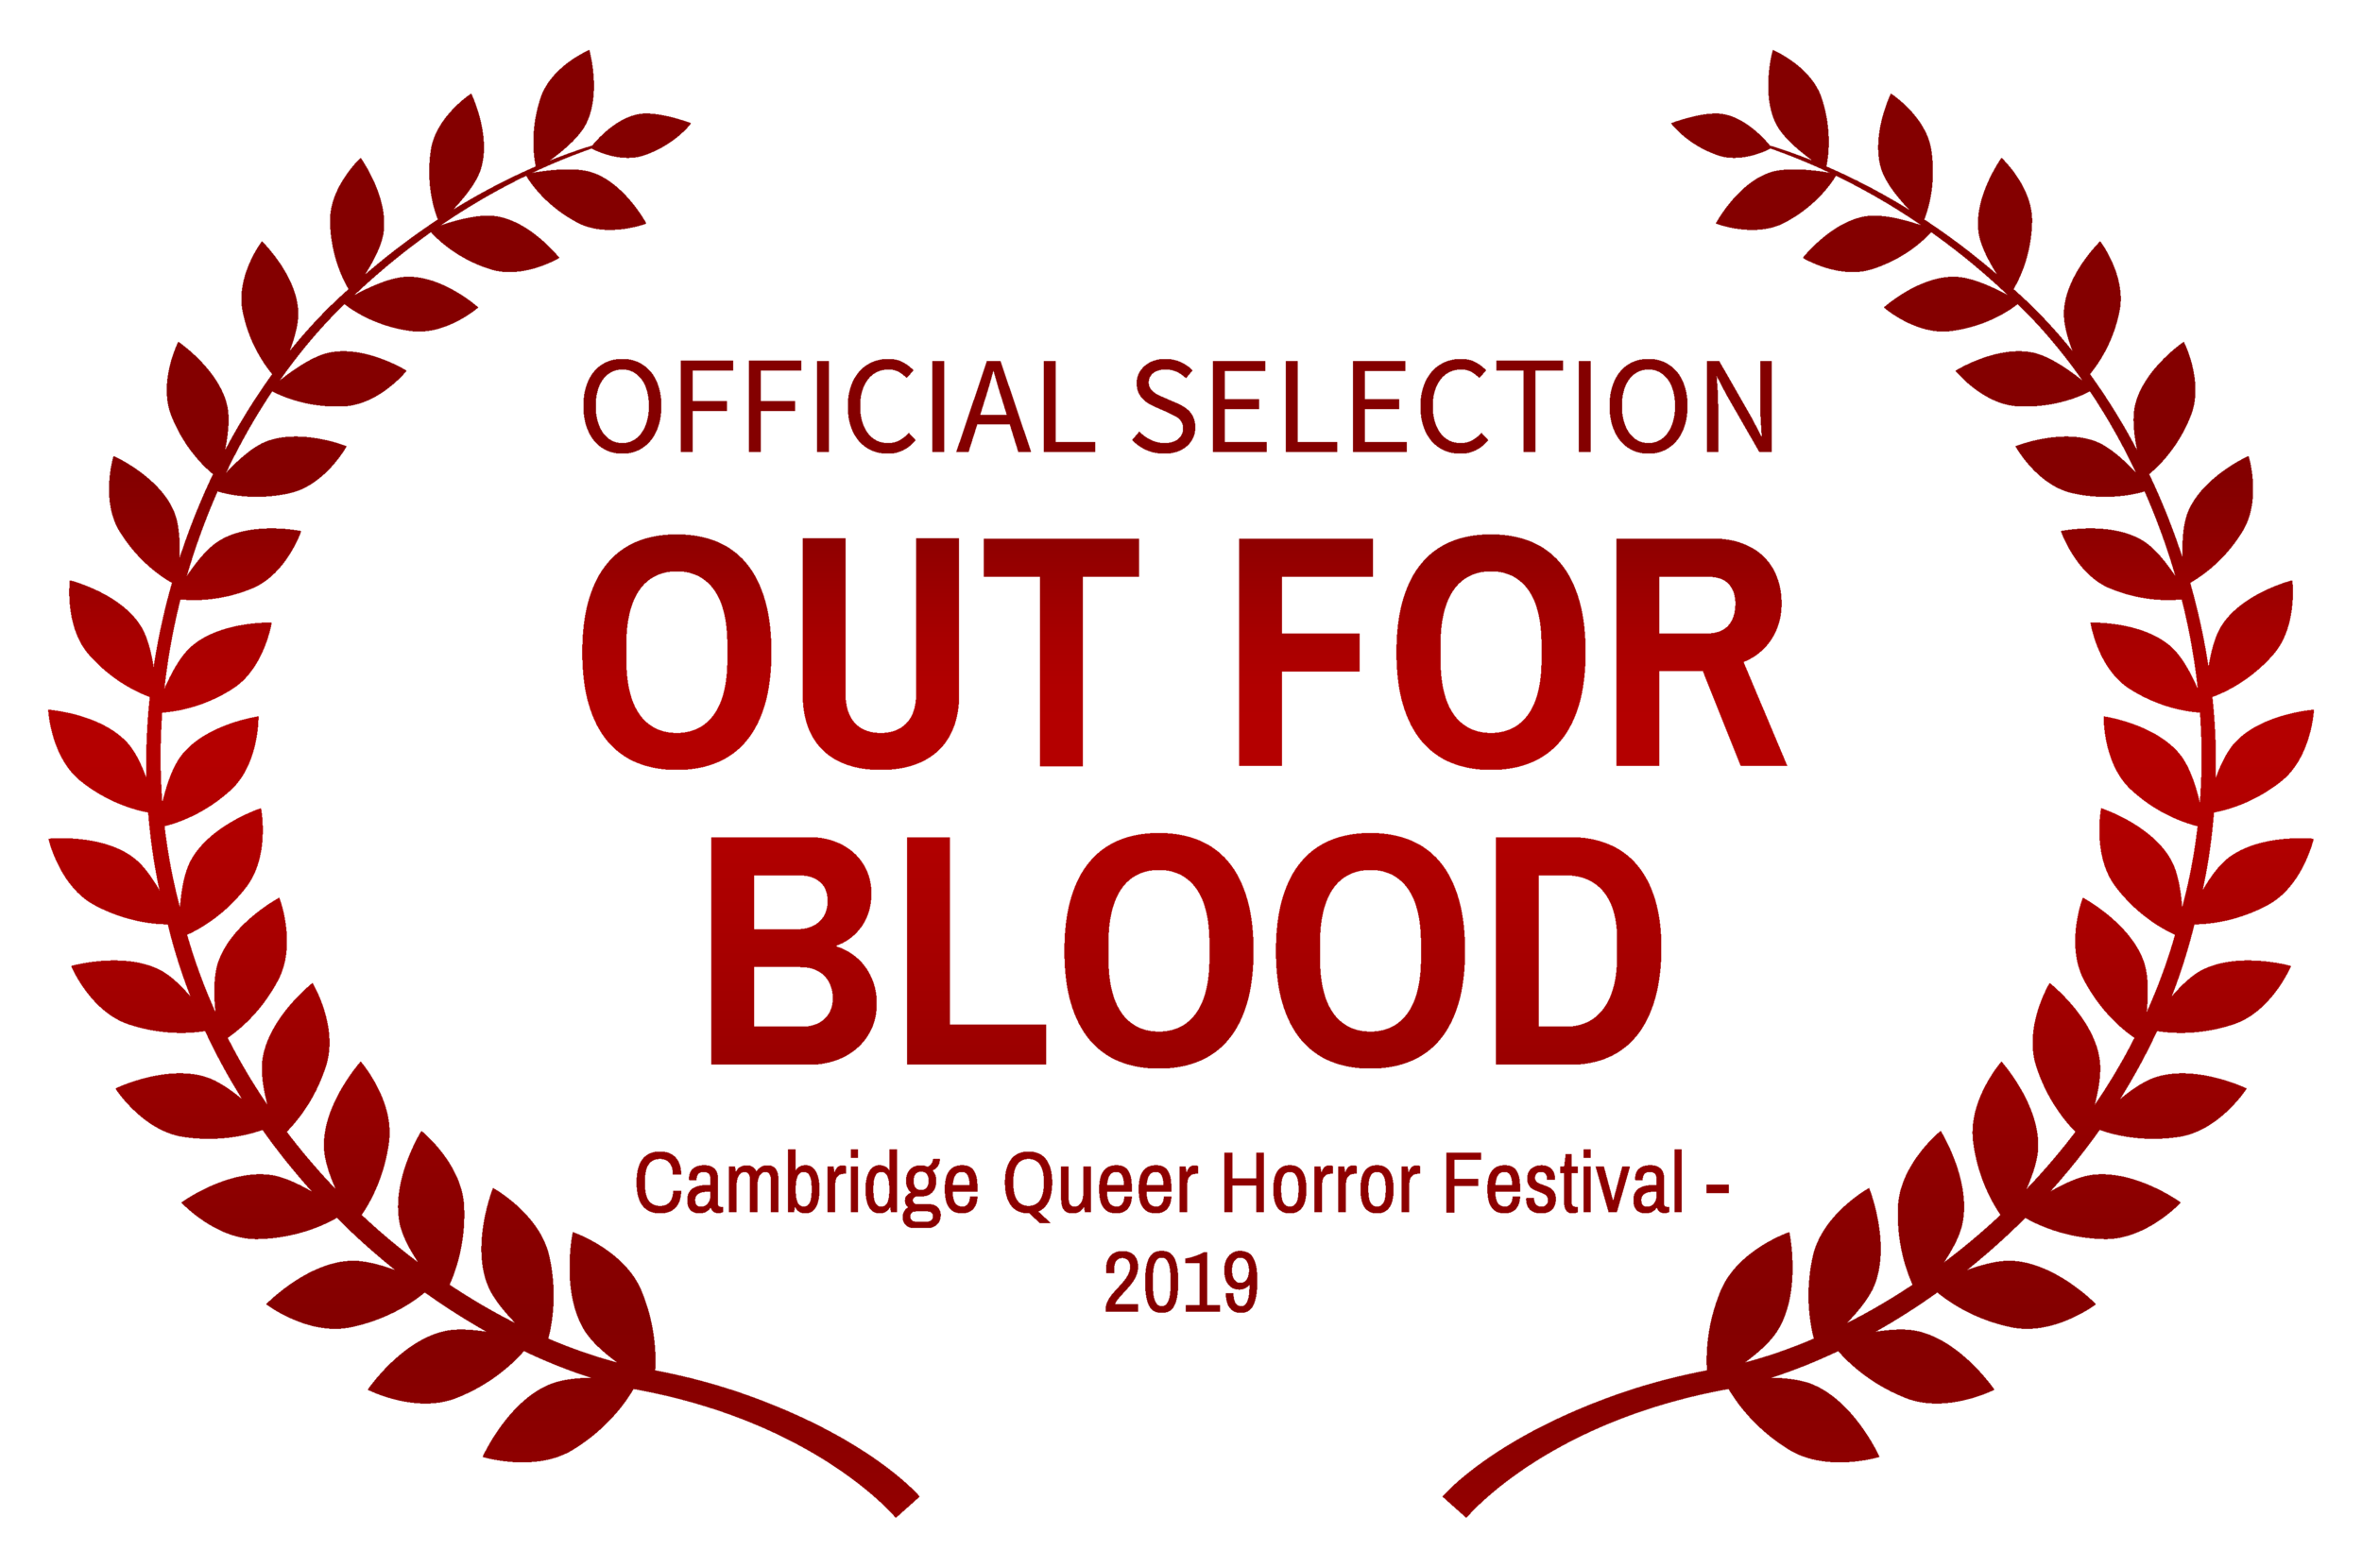 OFFICIALSELECTION-OUTFORBLOOD-CambridgeQueerHorrorFestival-2019_RED.png